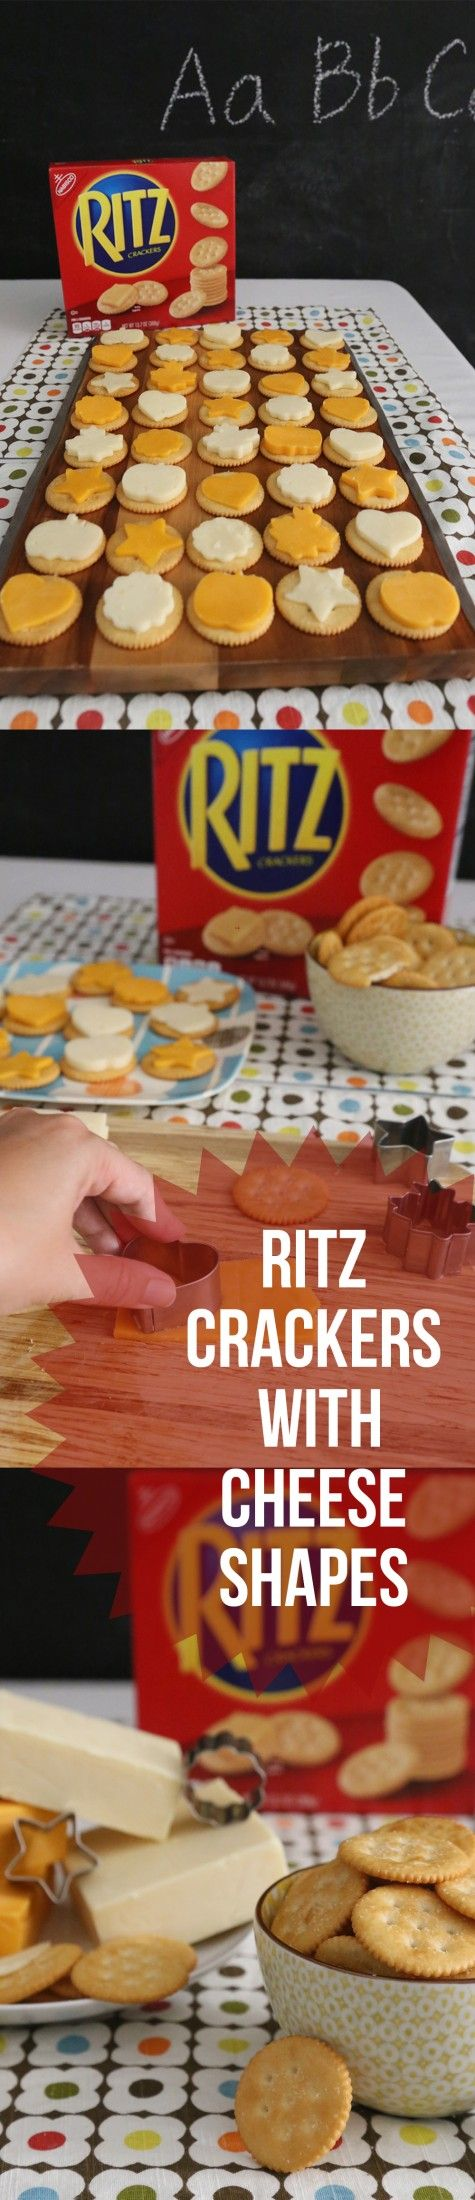 Cheese and crackers are a classic snack -- take things up a notch by cutting out cheese shapes and topping them on RITZ Crackers. [Sp]